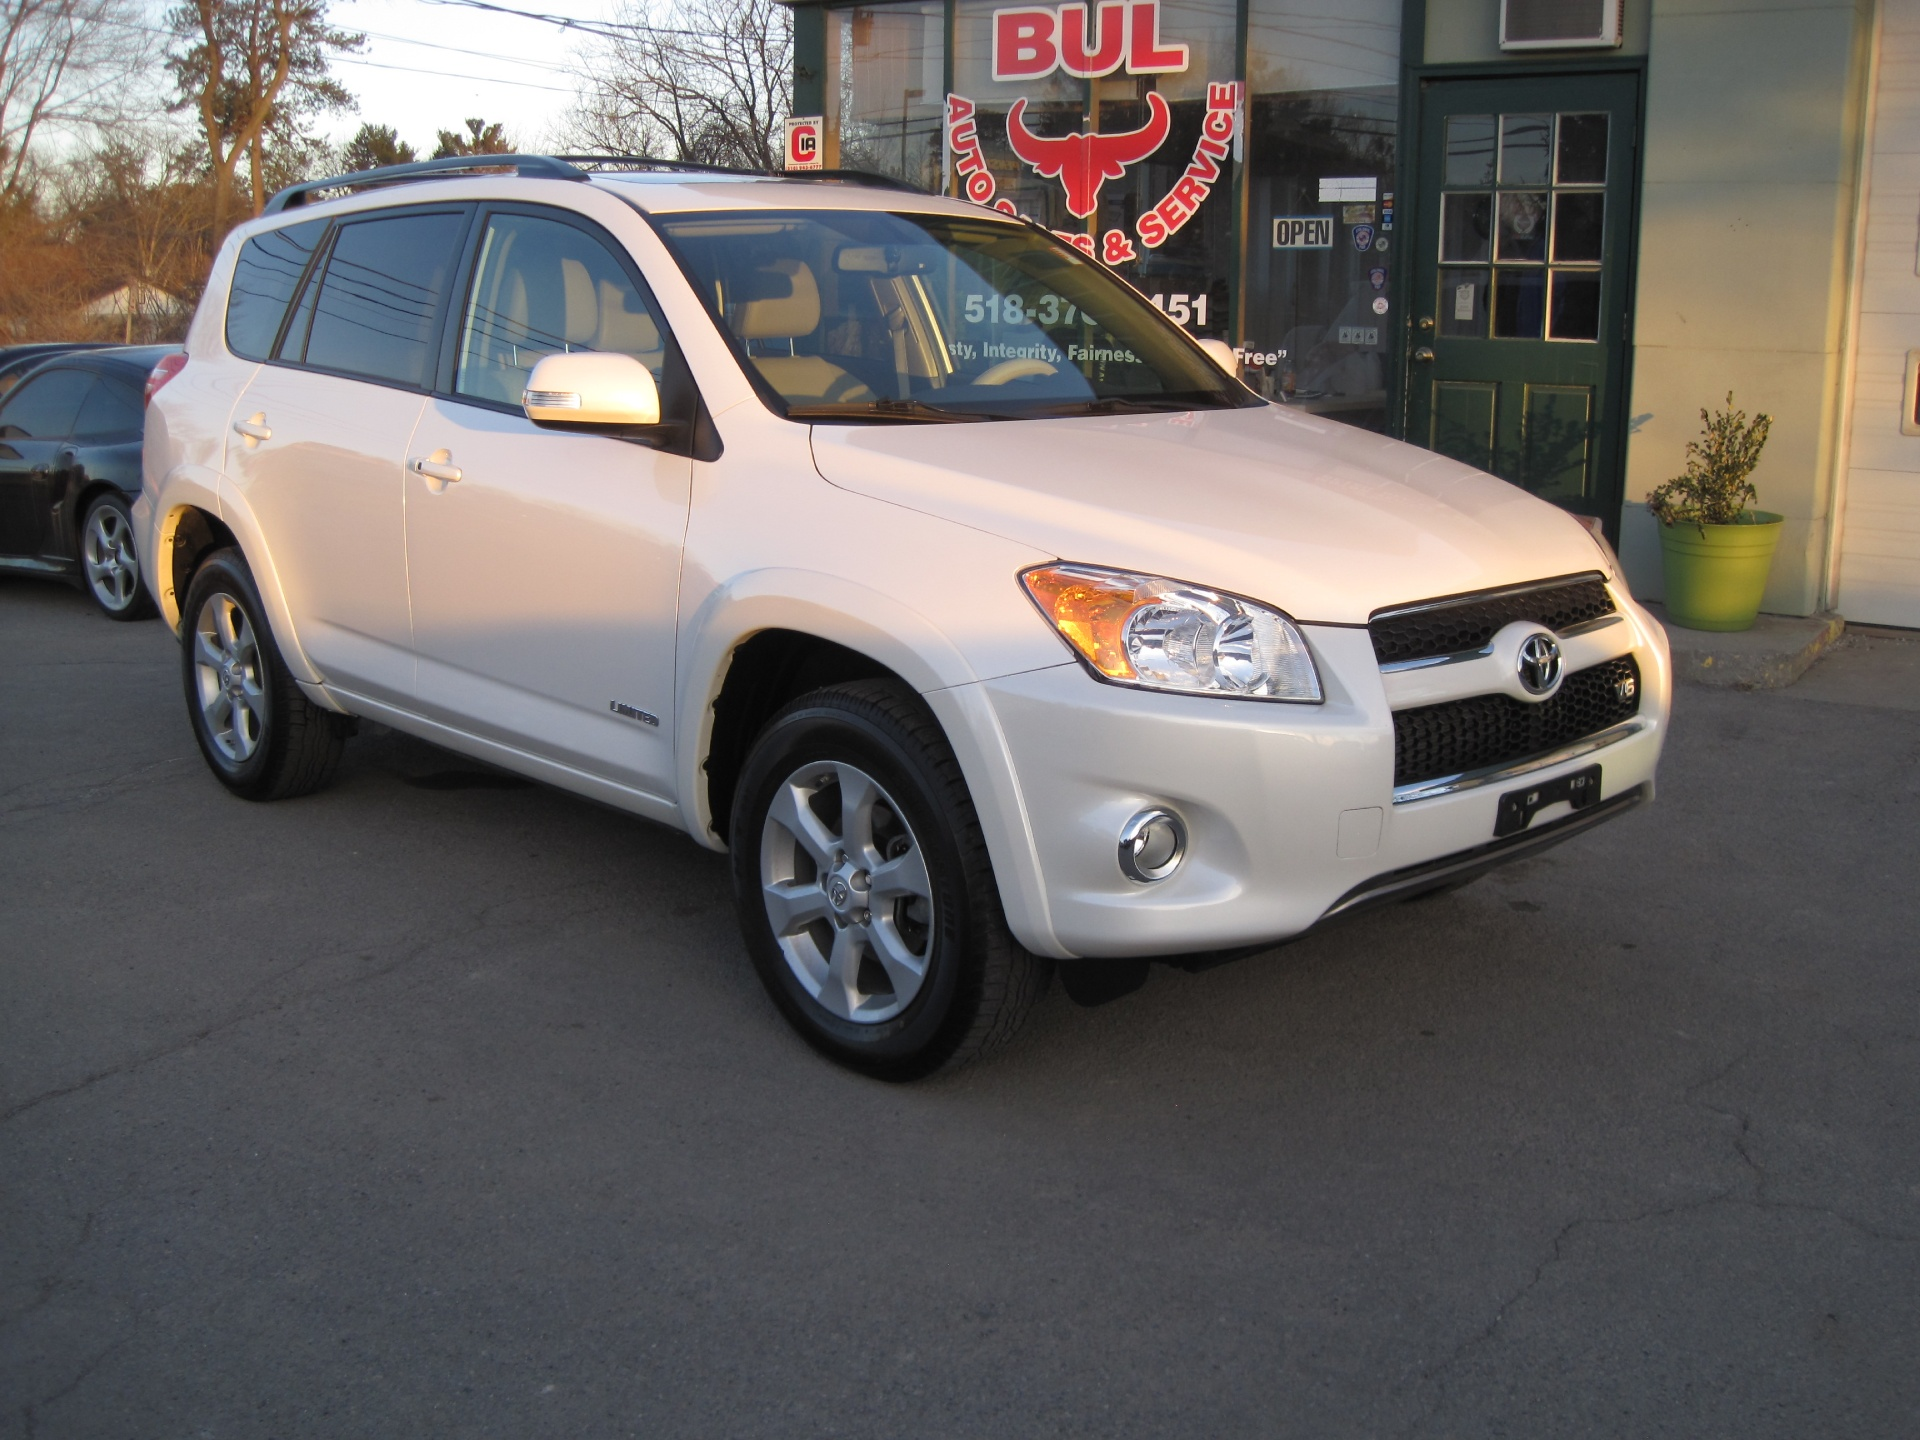 2012 toyota rav4 limited 4x4 4wd like new inside and out super low miles stock 15037 for sale. Black Bedroom Furniture Sets. Home Design Ideas